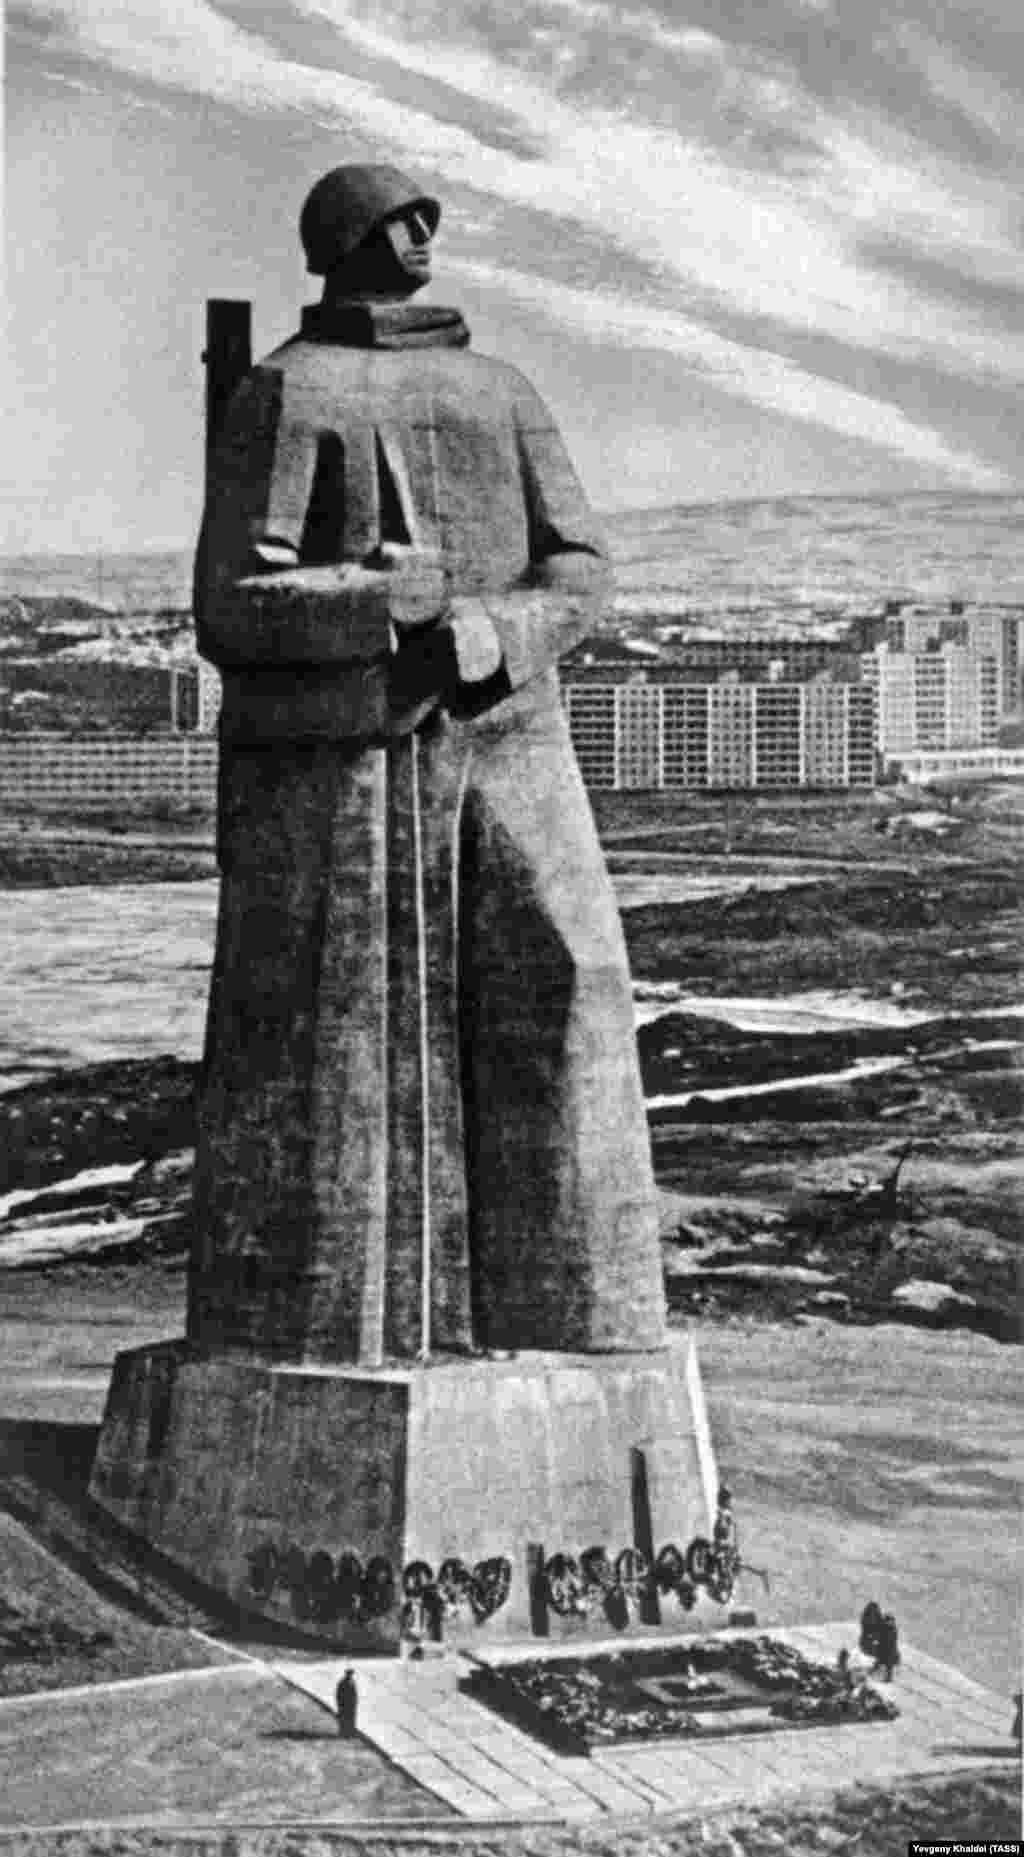 The World War II monument in Murmansk, photographed by Khaldei late in his career. Although he was hired by Pravda, the communist newspaper in 1959, he again lost his position in 1976. The great photographer ended his days in a small apartment in the suburbs of Moscow. He died in 1997.